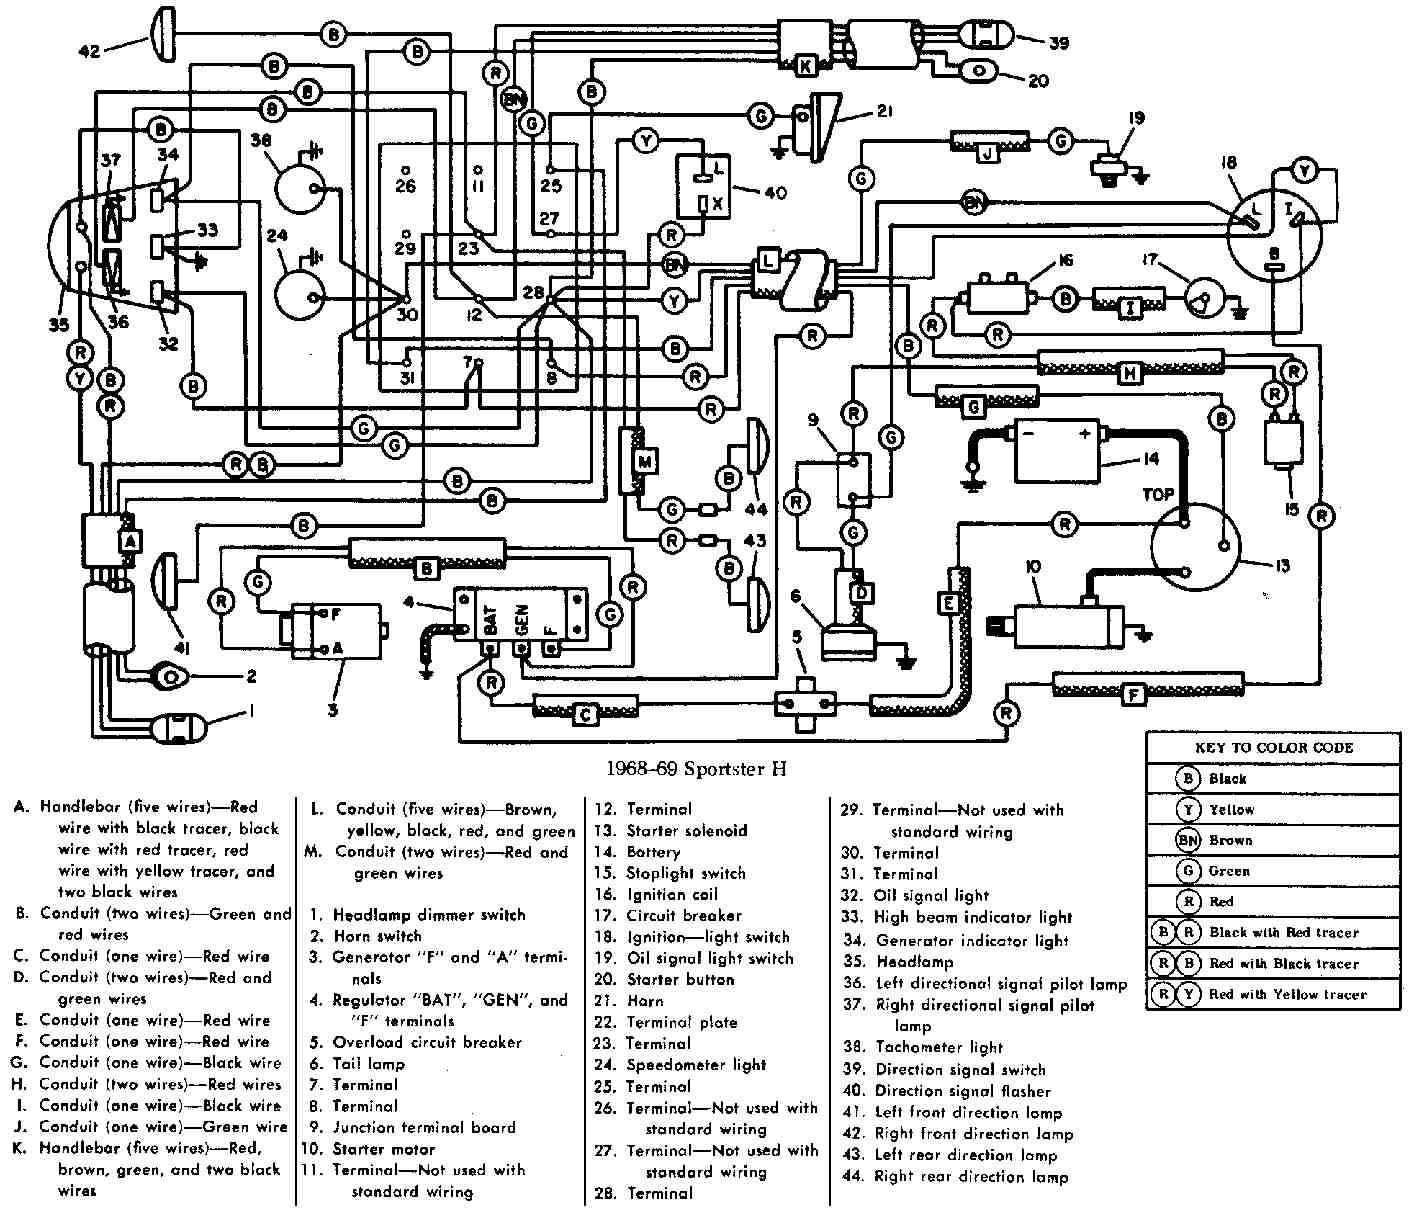 Harley Davidson - Motorcycle Manuals PDF, Wiring Diagrams & Fault ...